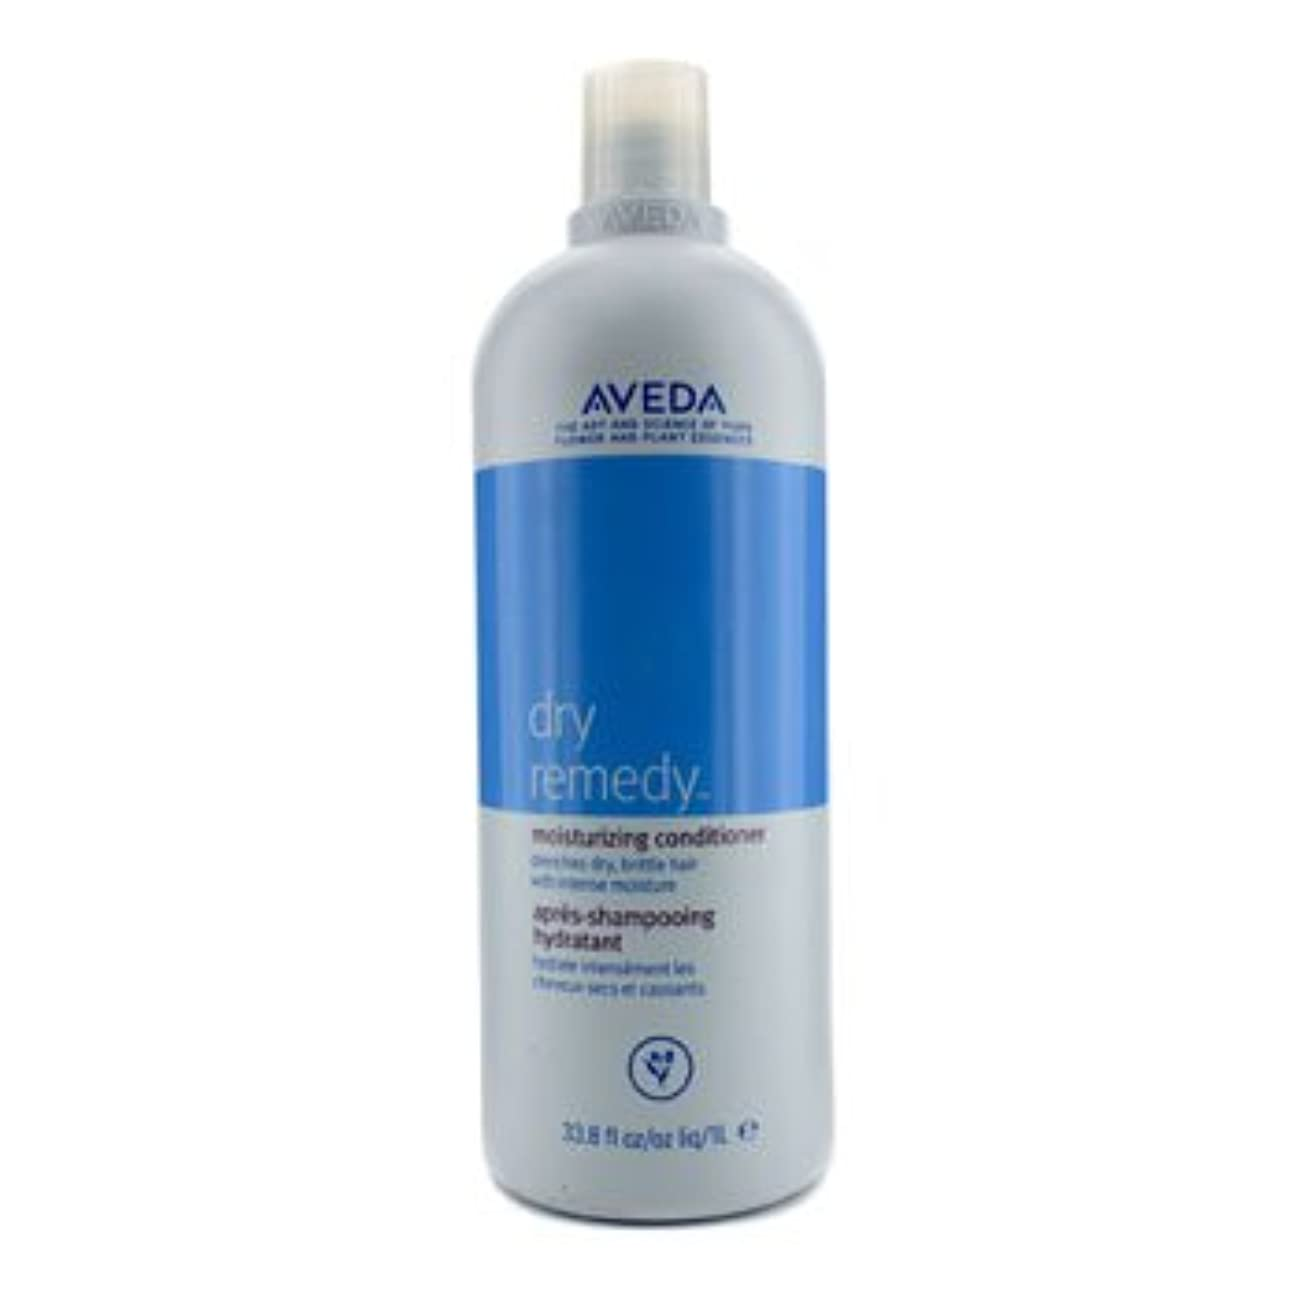 噂侵入苦[Aveda] Dry Remedy Moisturizing Conditioner - For Drenches Dry Brittle Hair (New Packaging) 1000ml/33.8oz